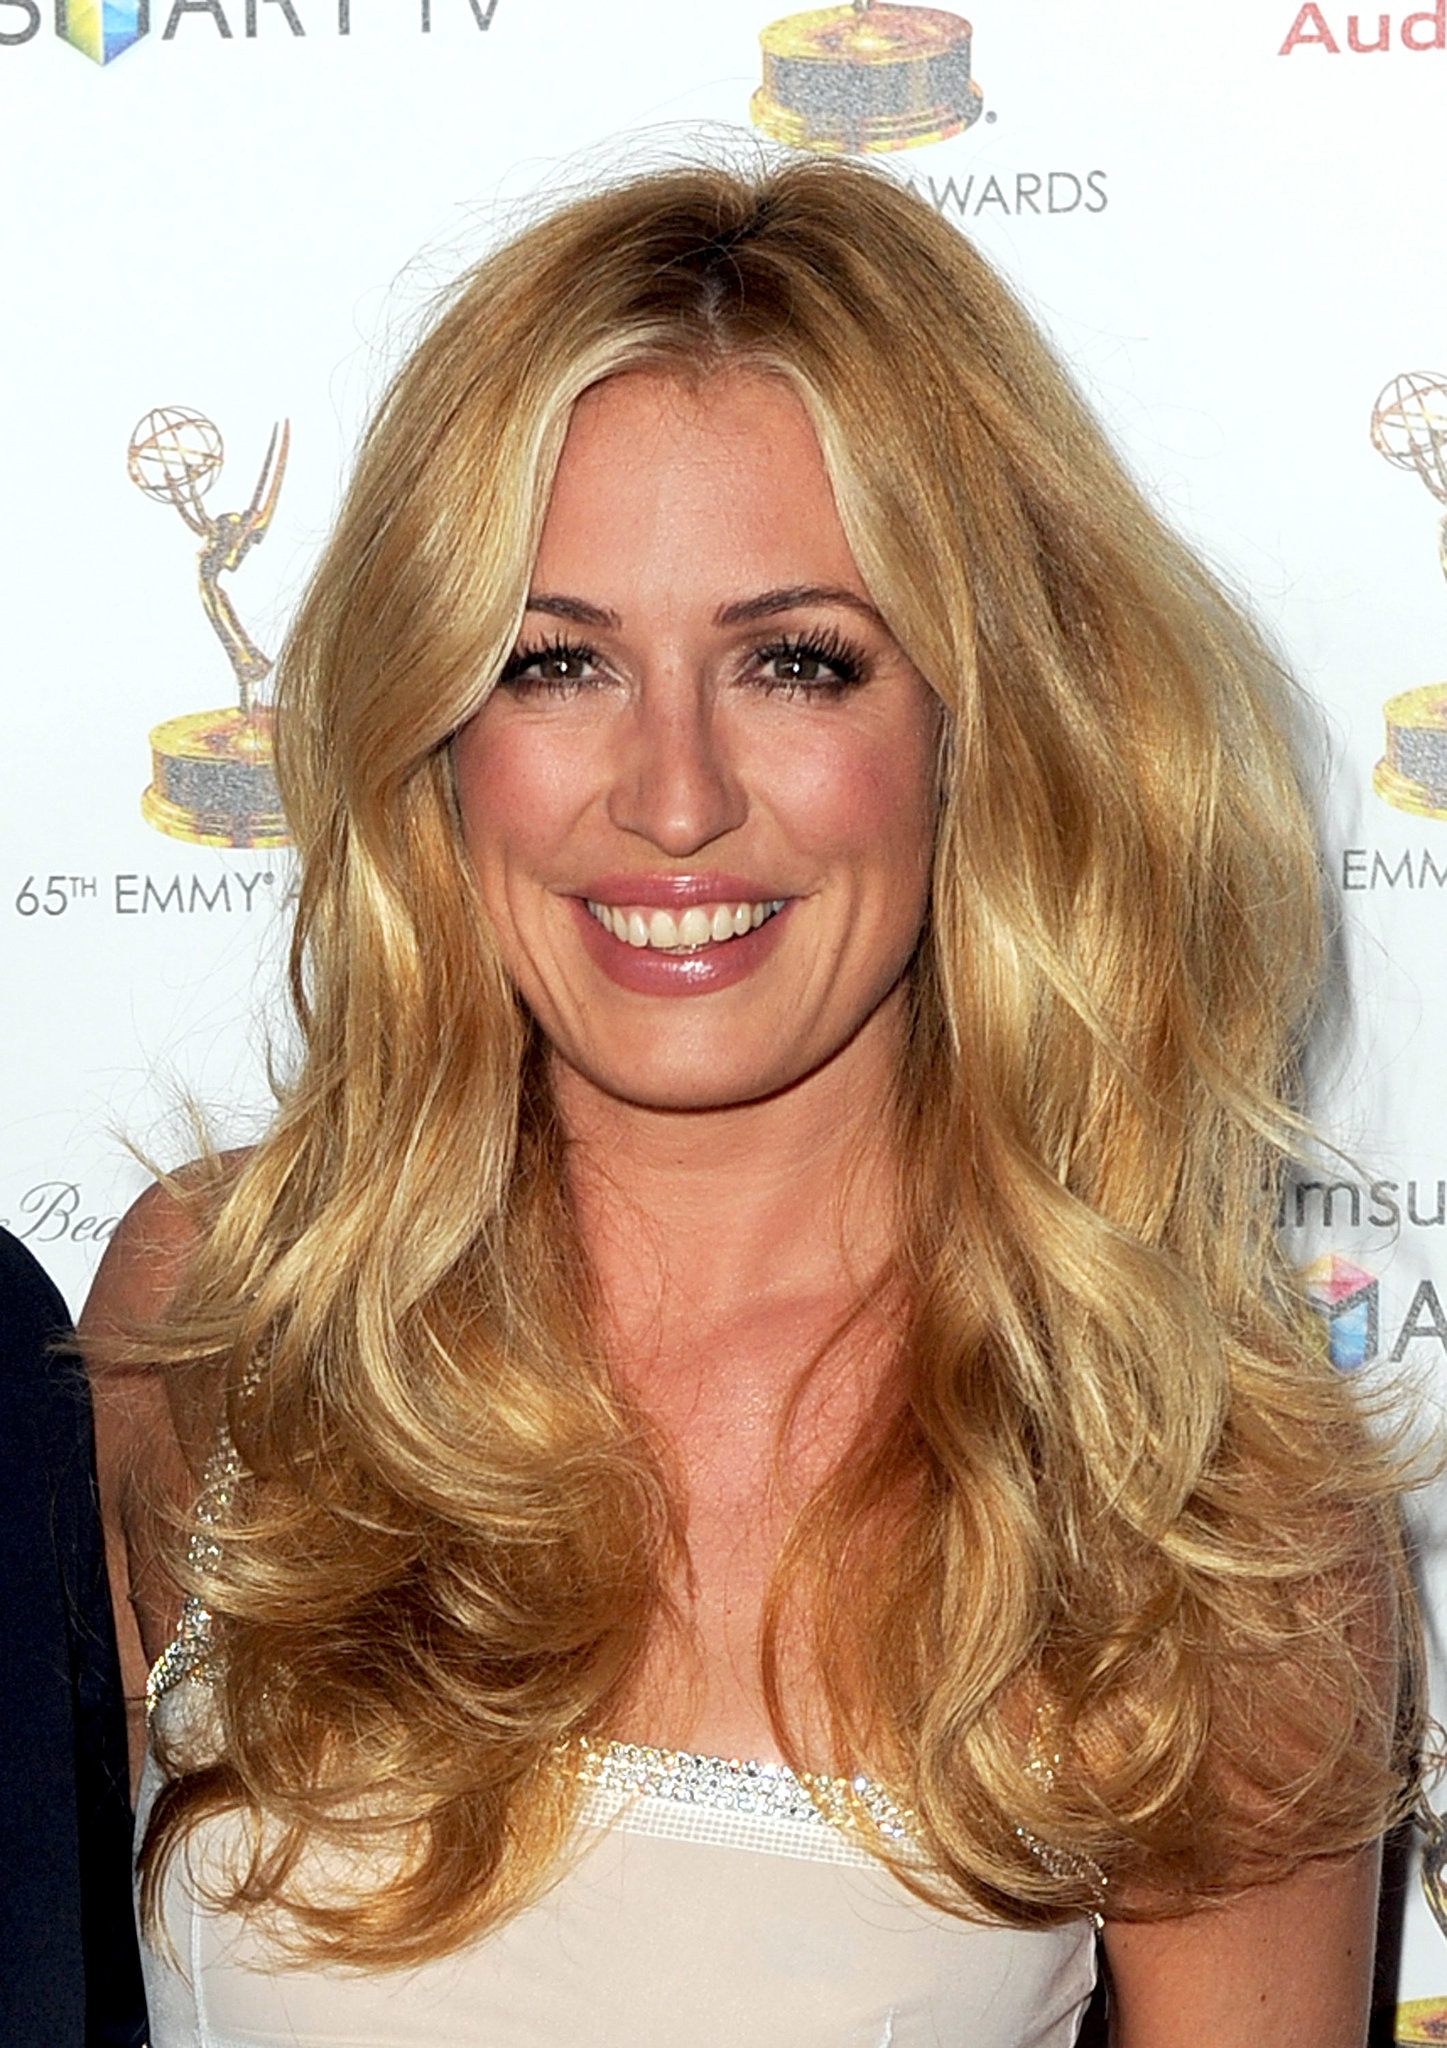 Cat Deeley opted for a huge, voluminous blowout for the Academy of Television Arts & Sciences' Emmy Awards Nominee Reception.